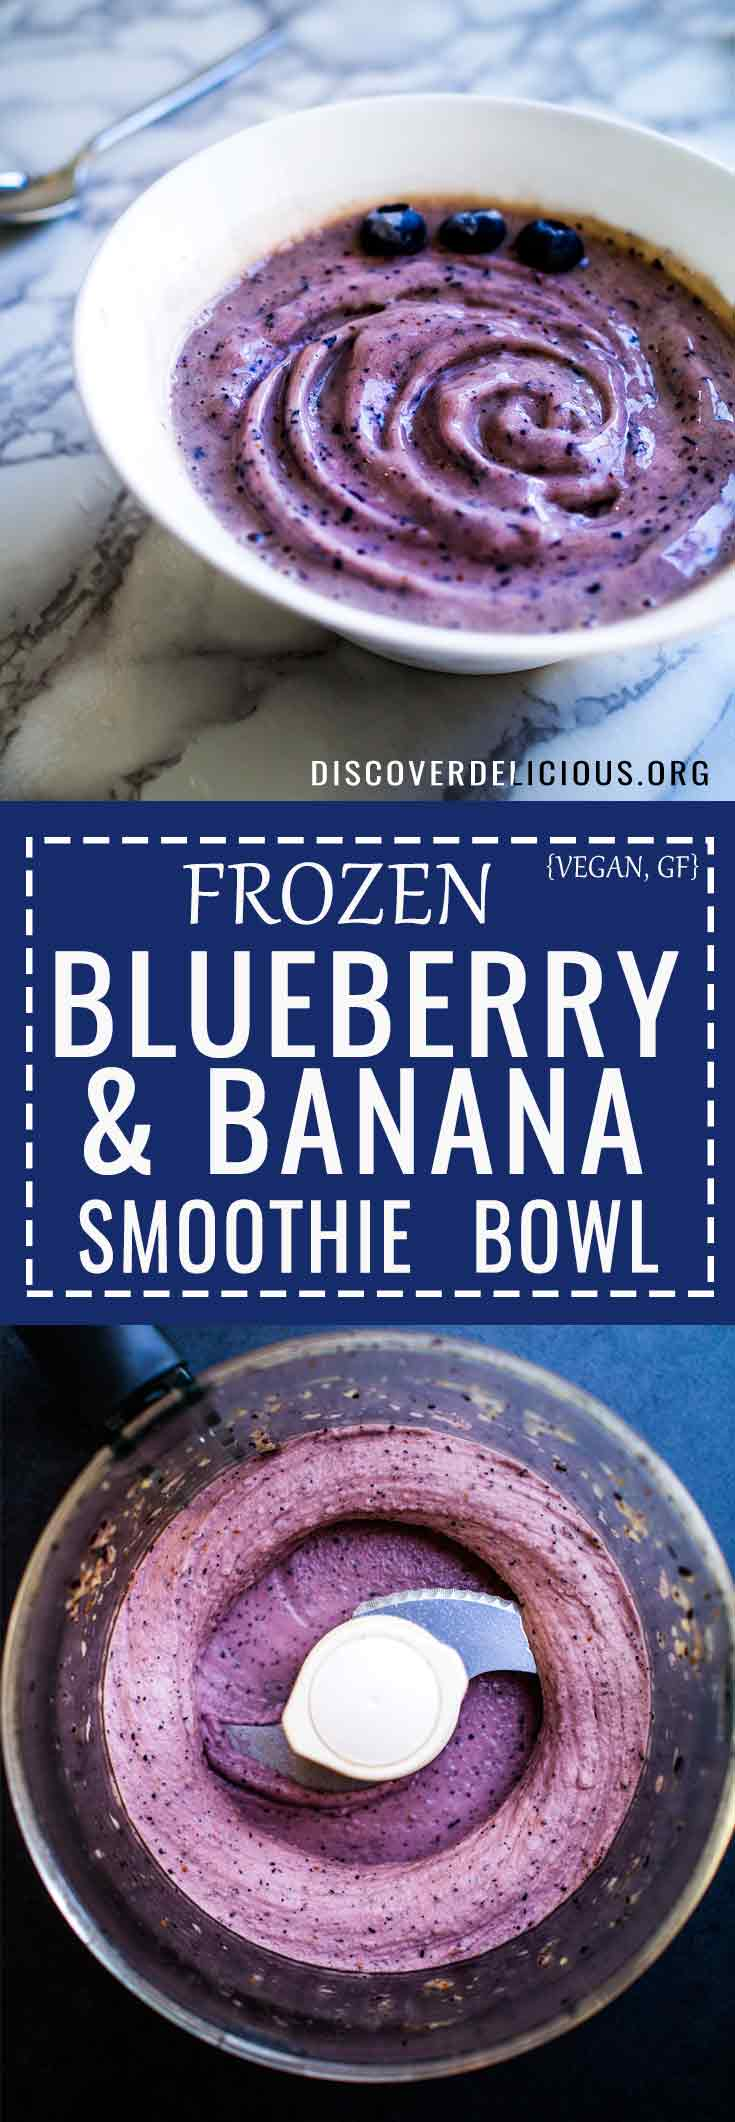 Simple 3-ingredient Blueberry & Banana Smoothie Bowl!     #recipe #vegan #vegan #berry #breakfast #easy #healthy #glutenfree #gluten #dairy #free